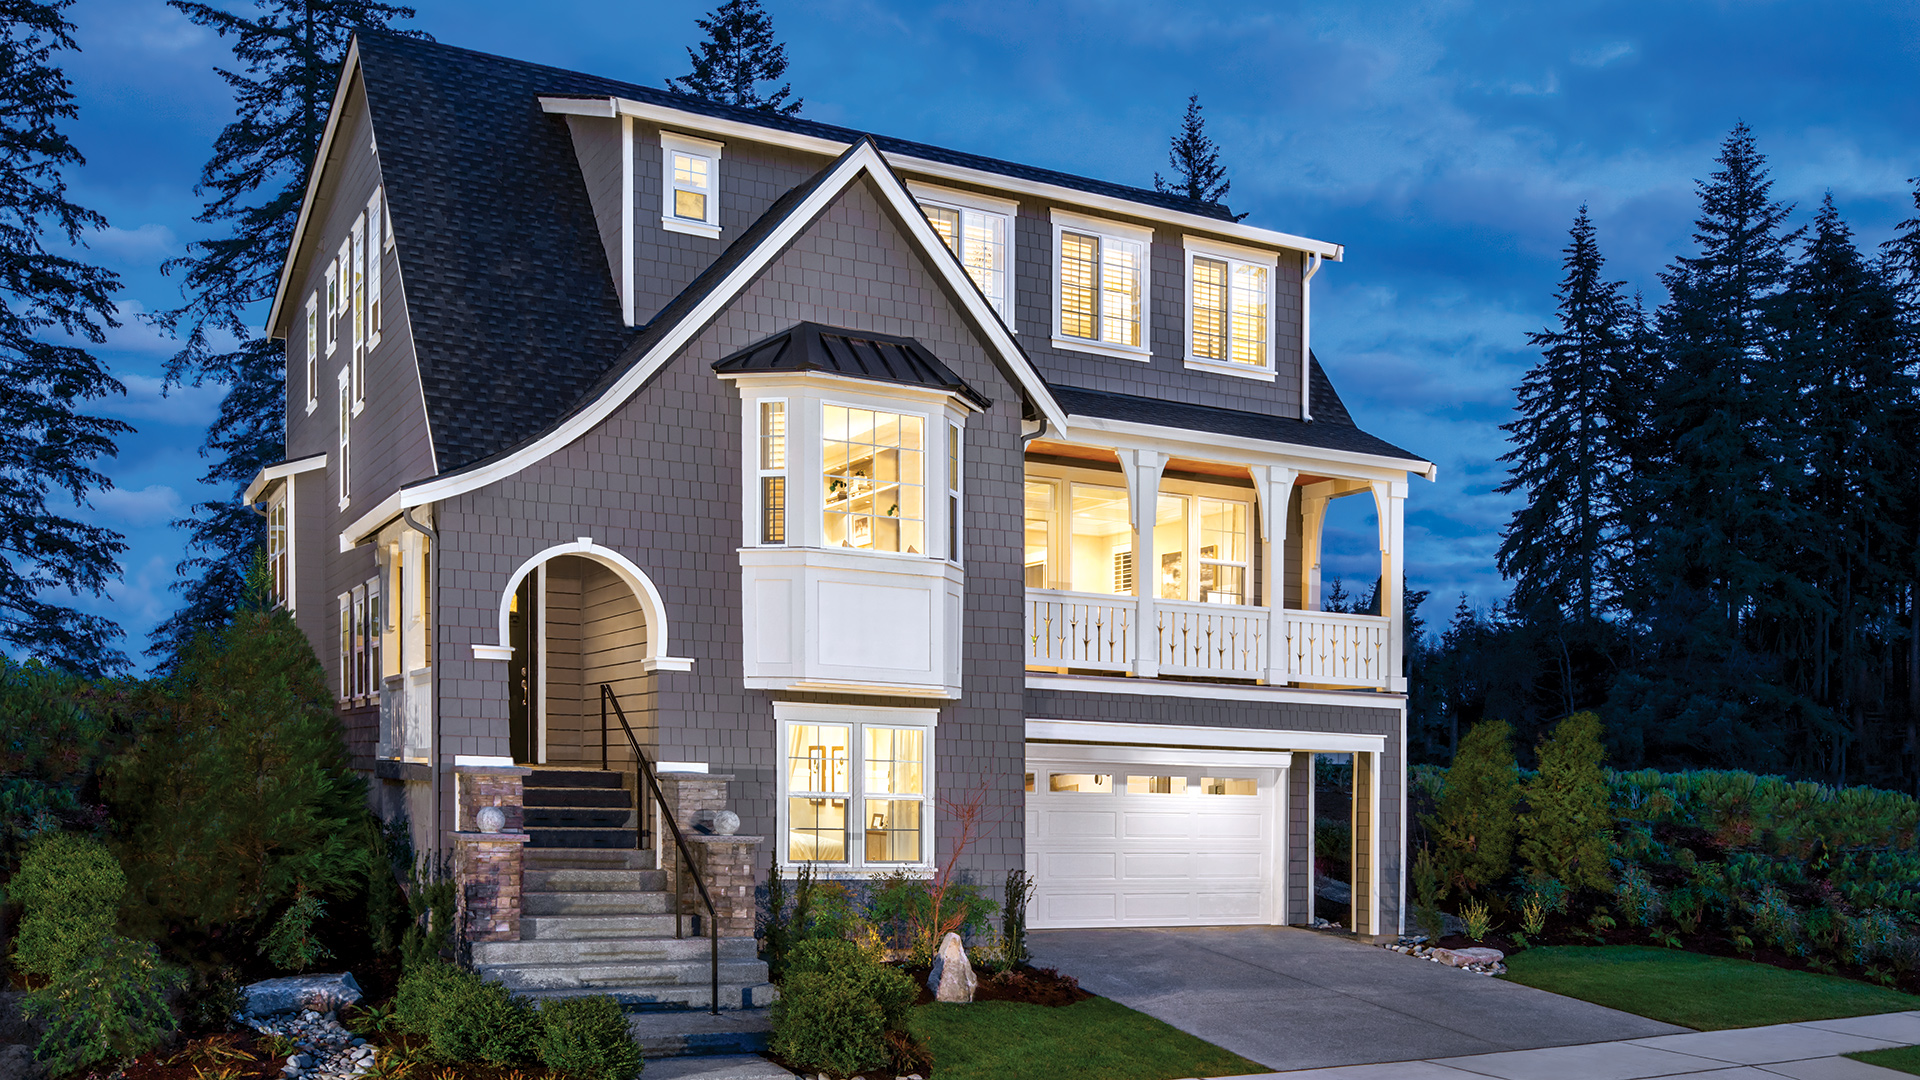 Garage Experts Of The Central Valley New Luxury Homes For Sale In Happy Valley Or Toll Brothers At